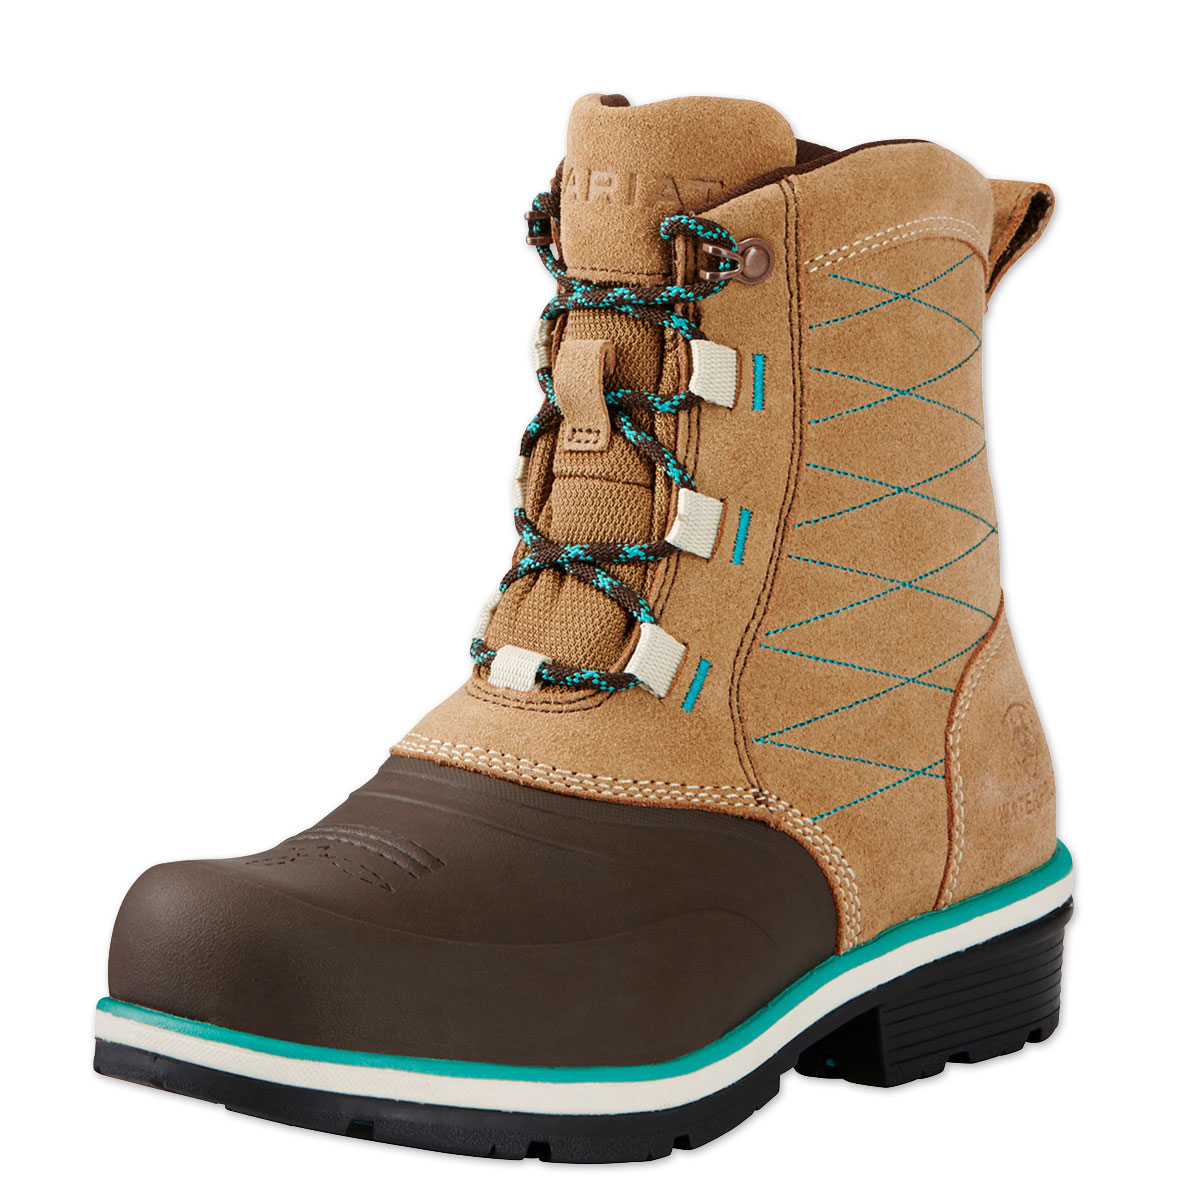 Ariat Women's Whirlwind Lace H20